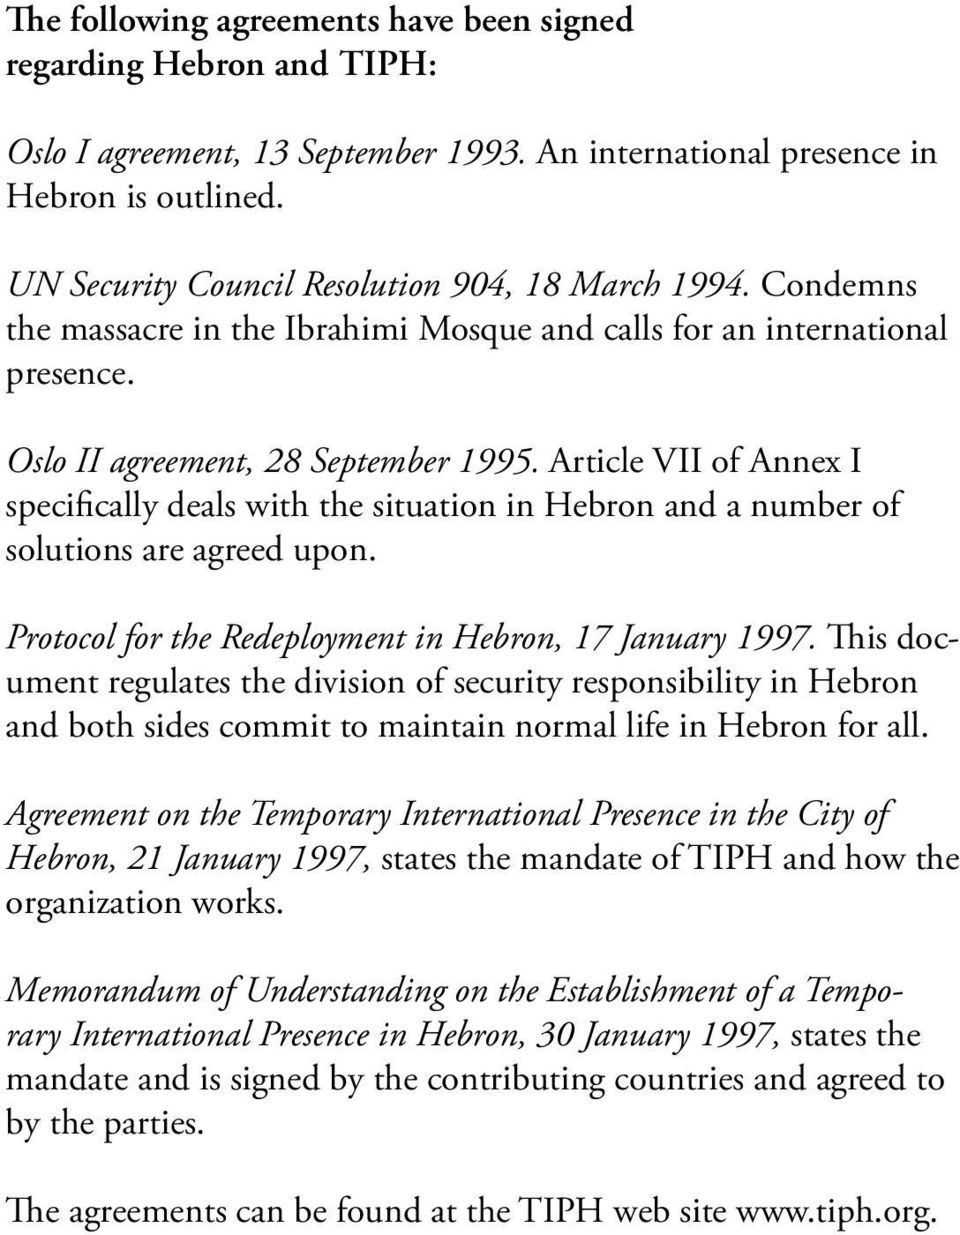 Article VII of Annex I specifically deals with the situation in Hebron and a number of solutions are agreed upon. Protocol for the Redeployment in Hebron, 17 January 1997.